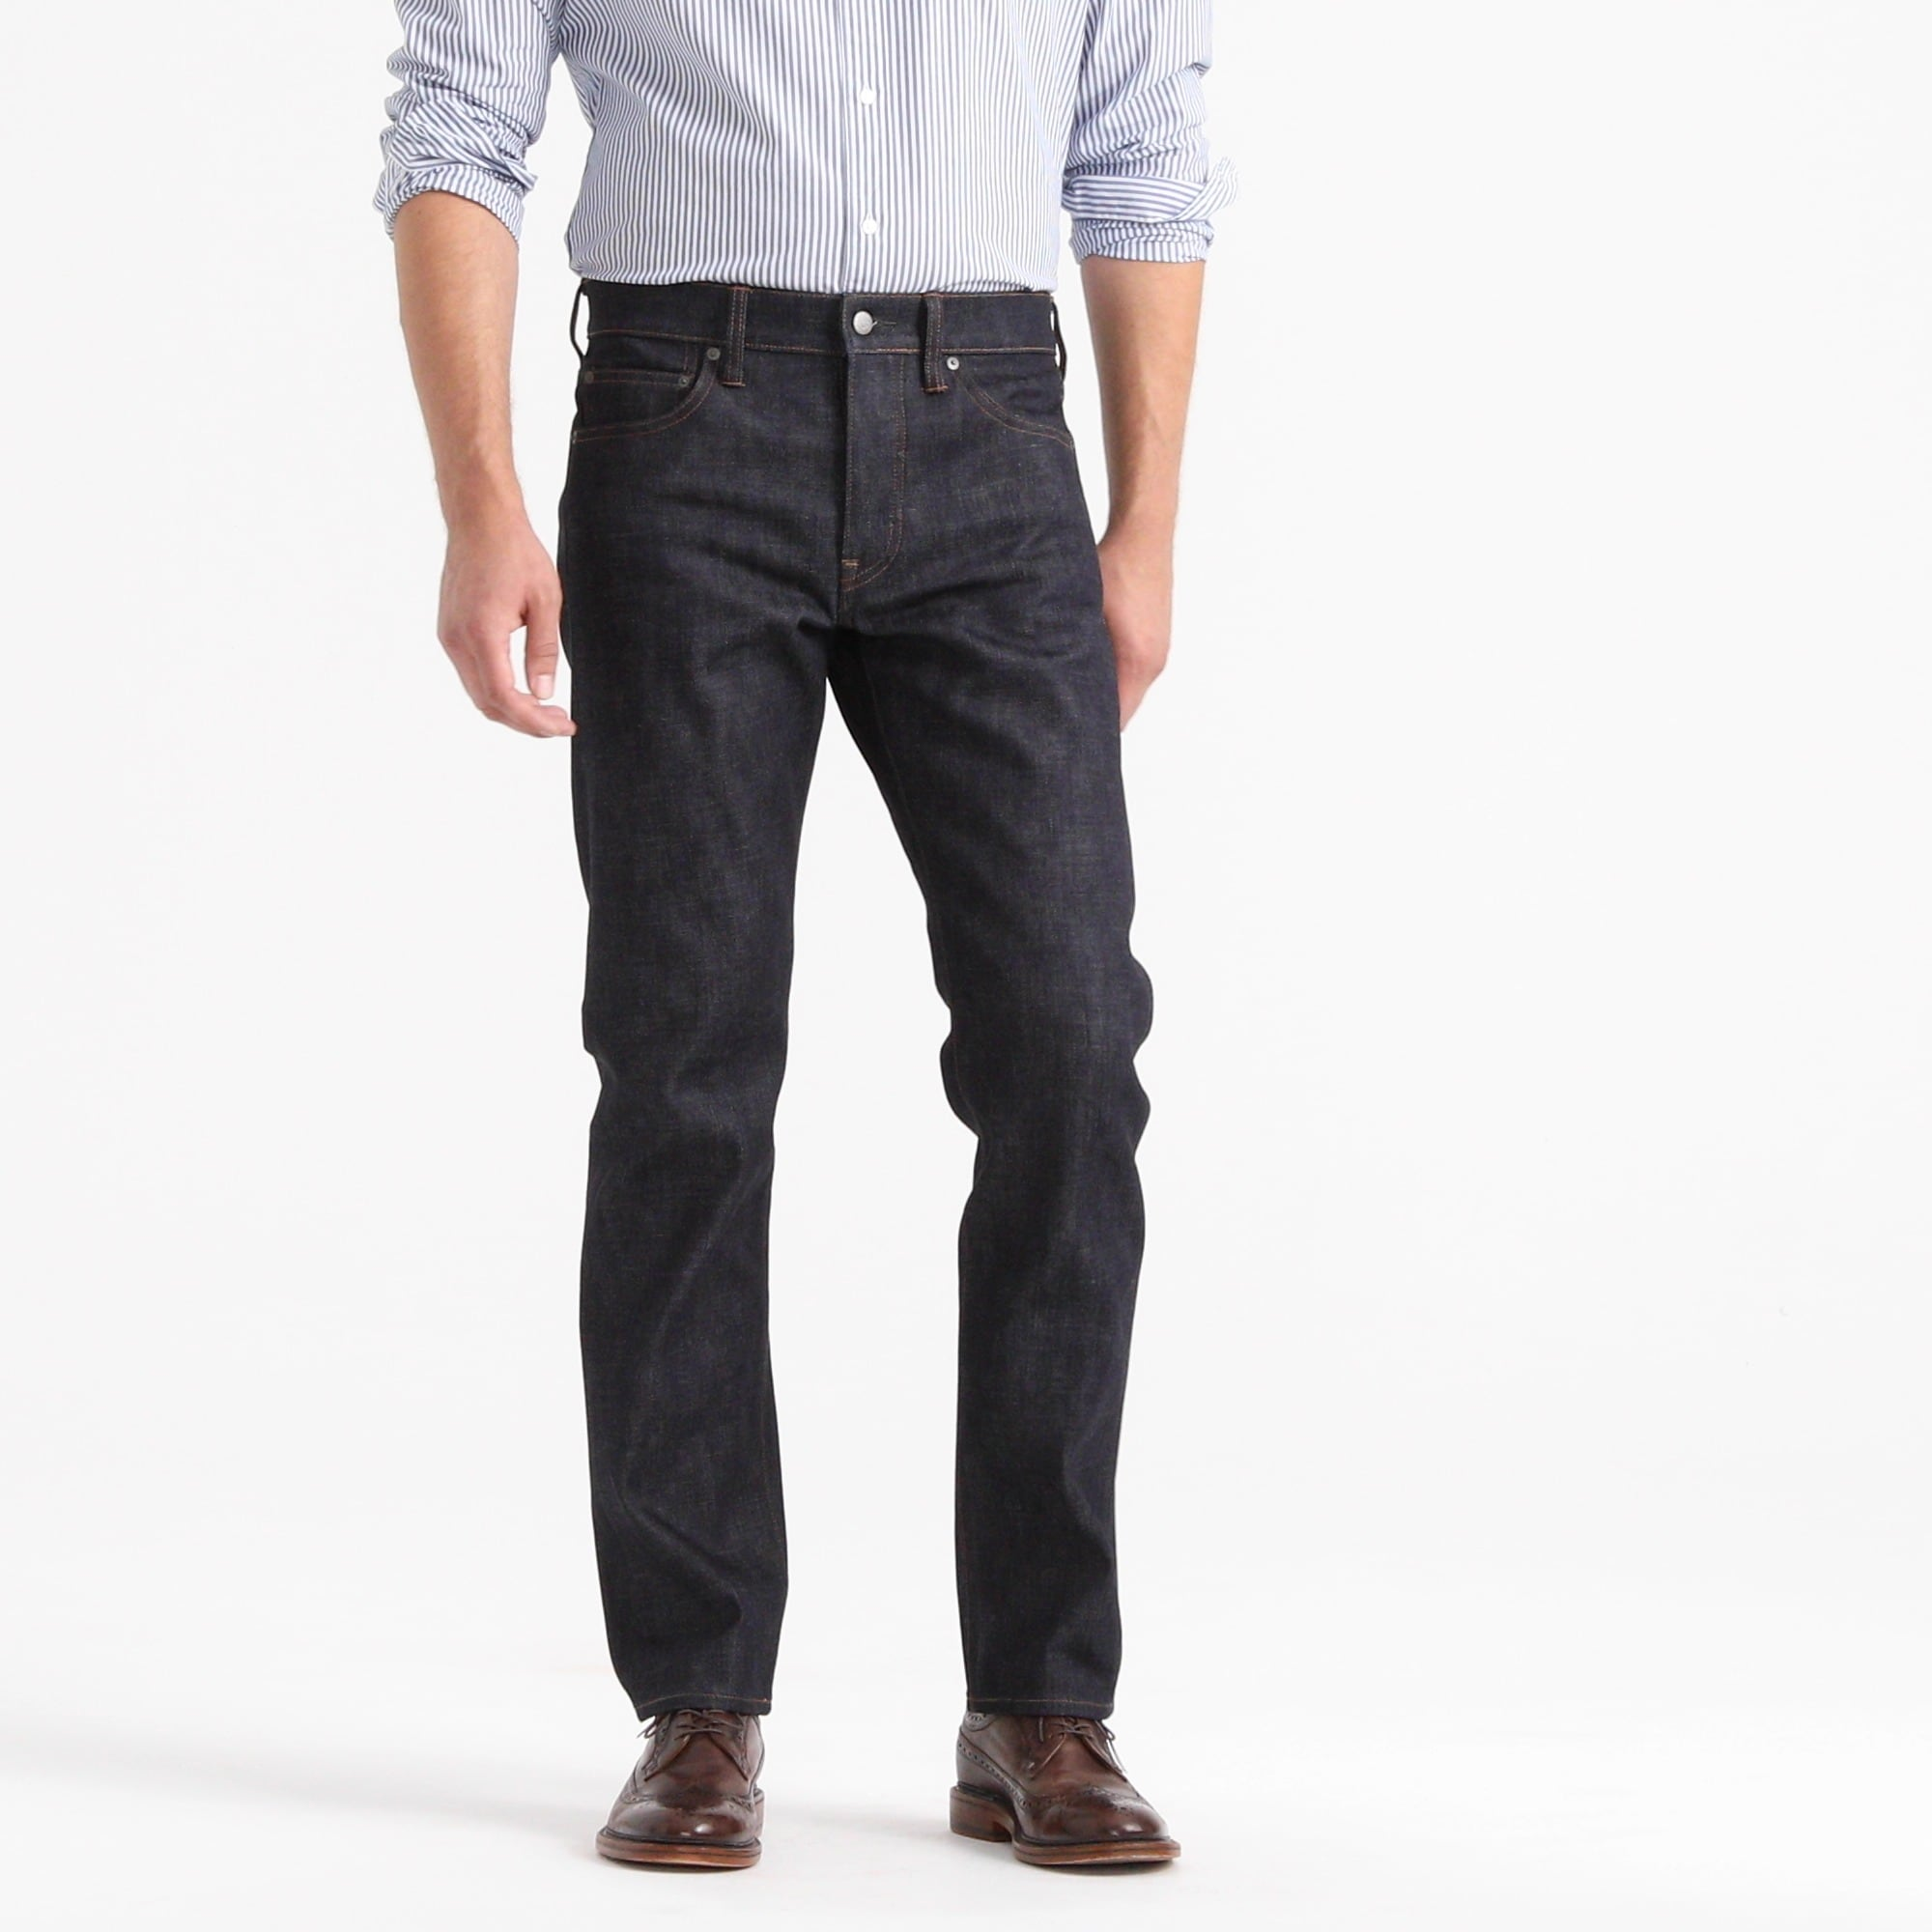 770 Straight-fit stretch jean in indigo raw selvedge